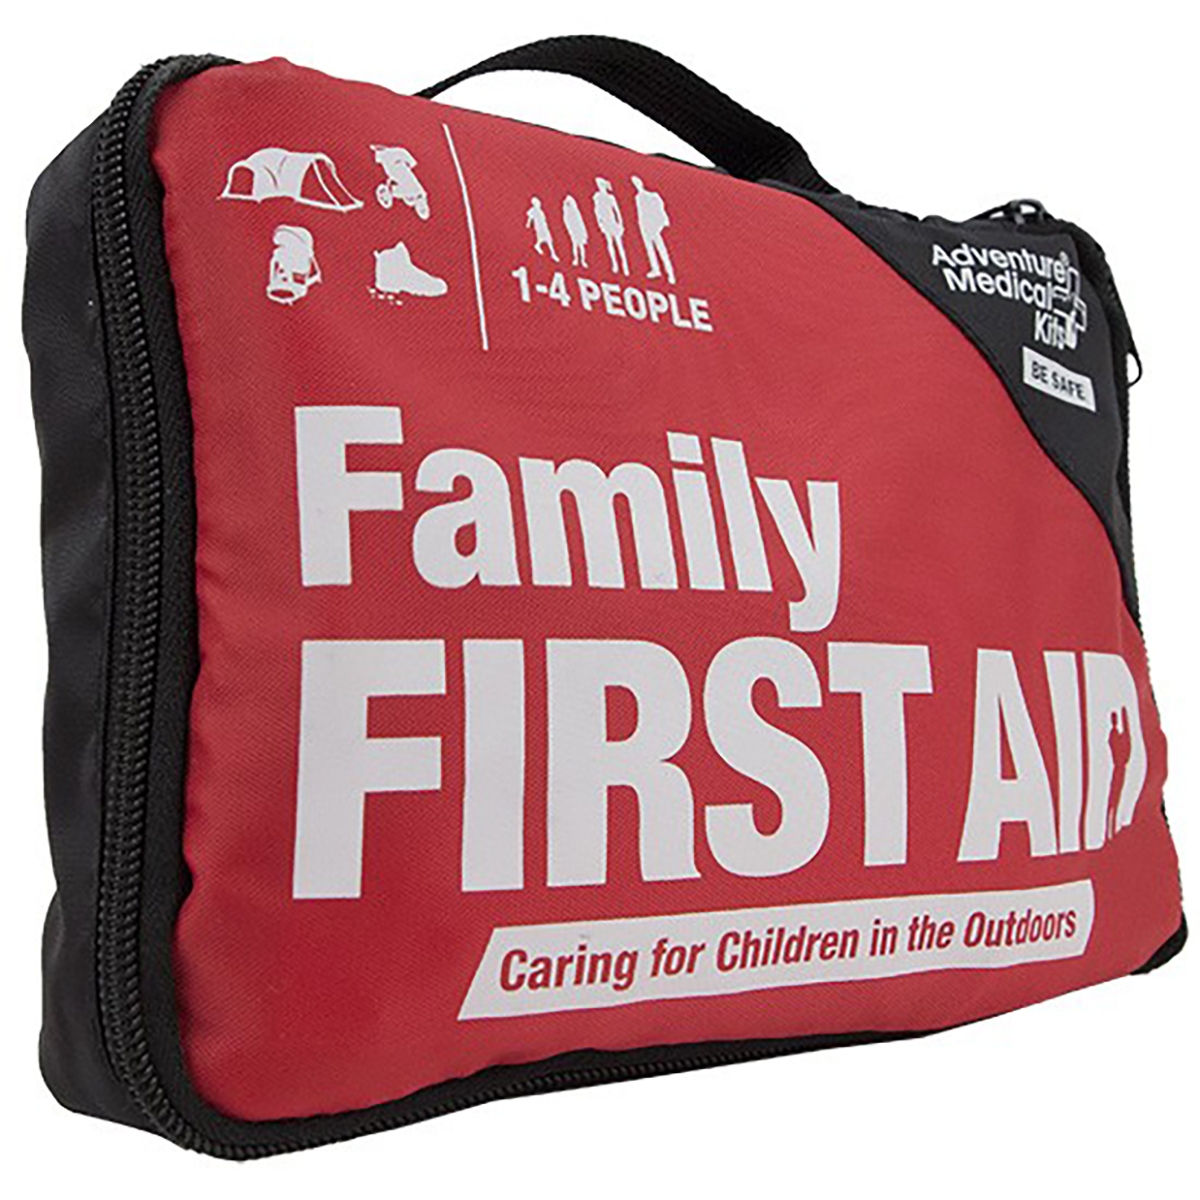 Outdoor Emergency Adventure Family First Aid kit - Survival First Aid kit for Camping Hunting Outdoor activities (Kit for 1-4 people)